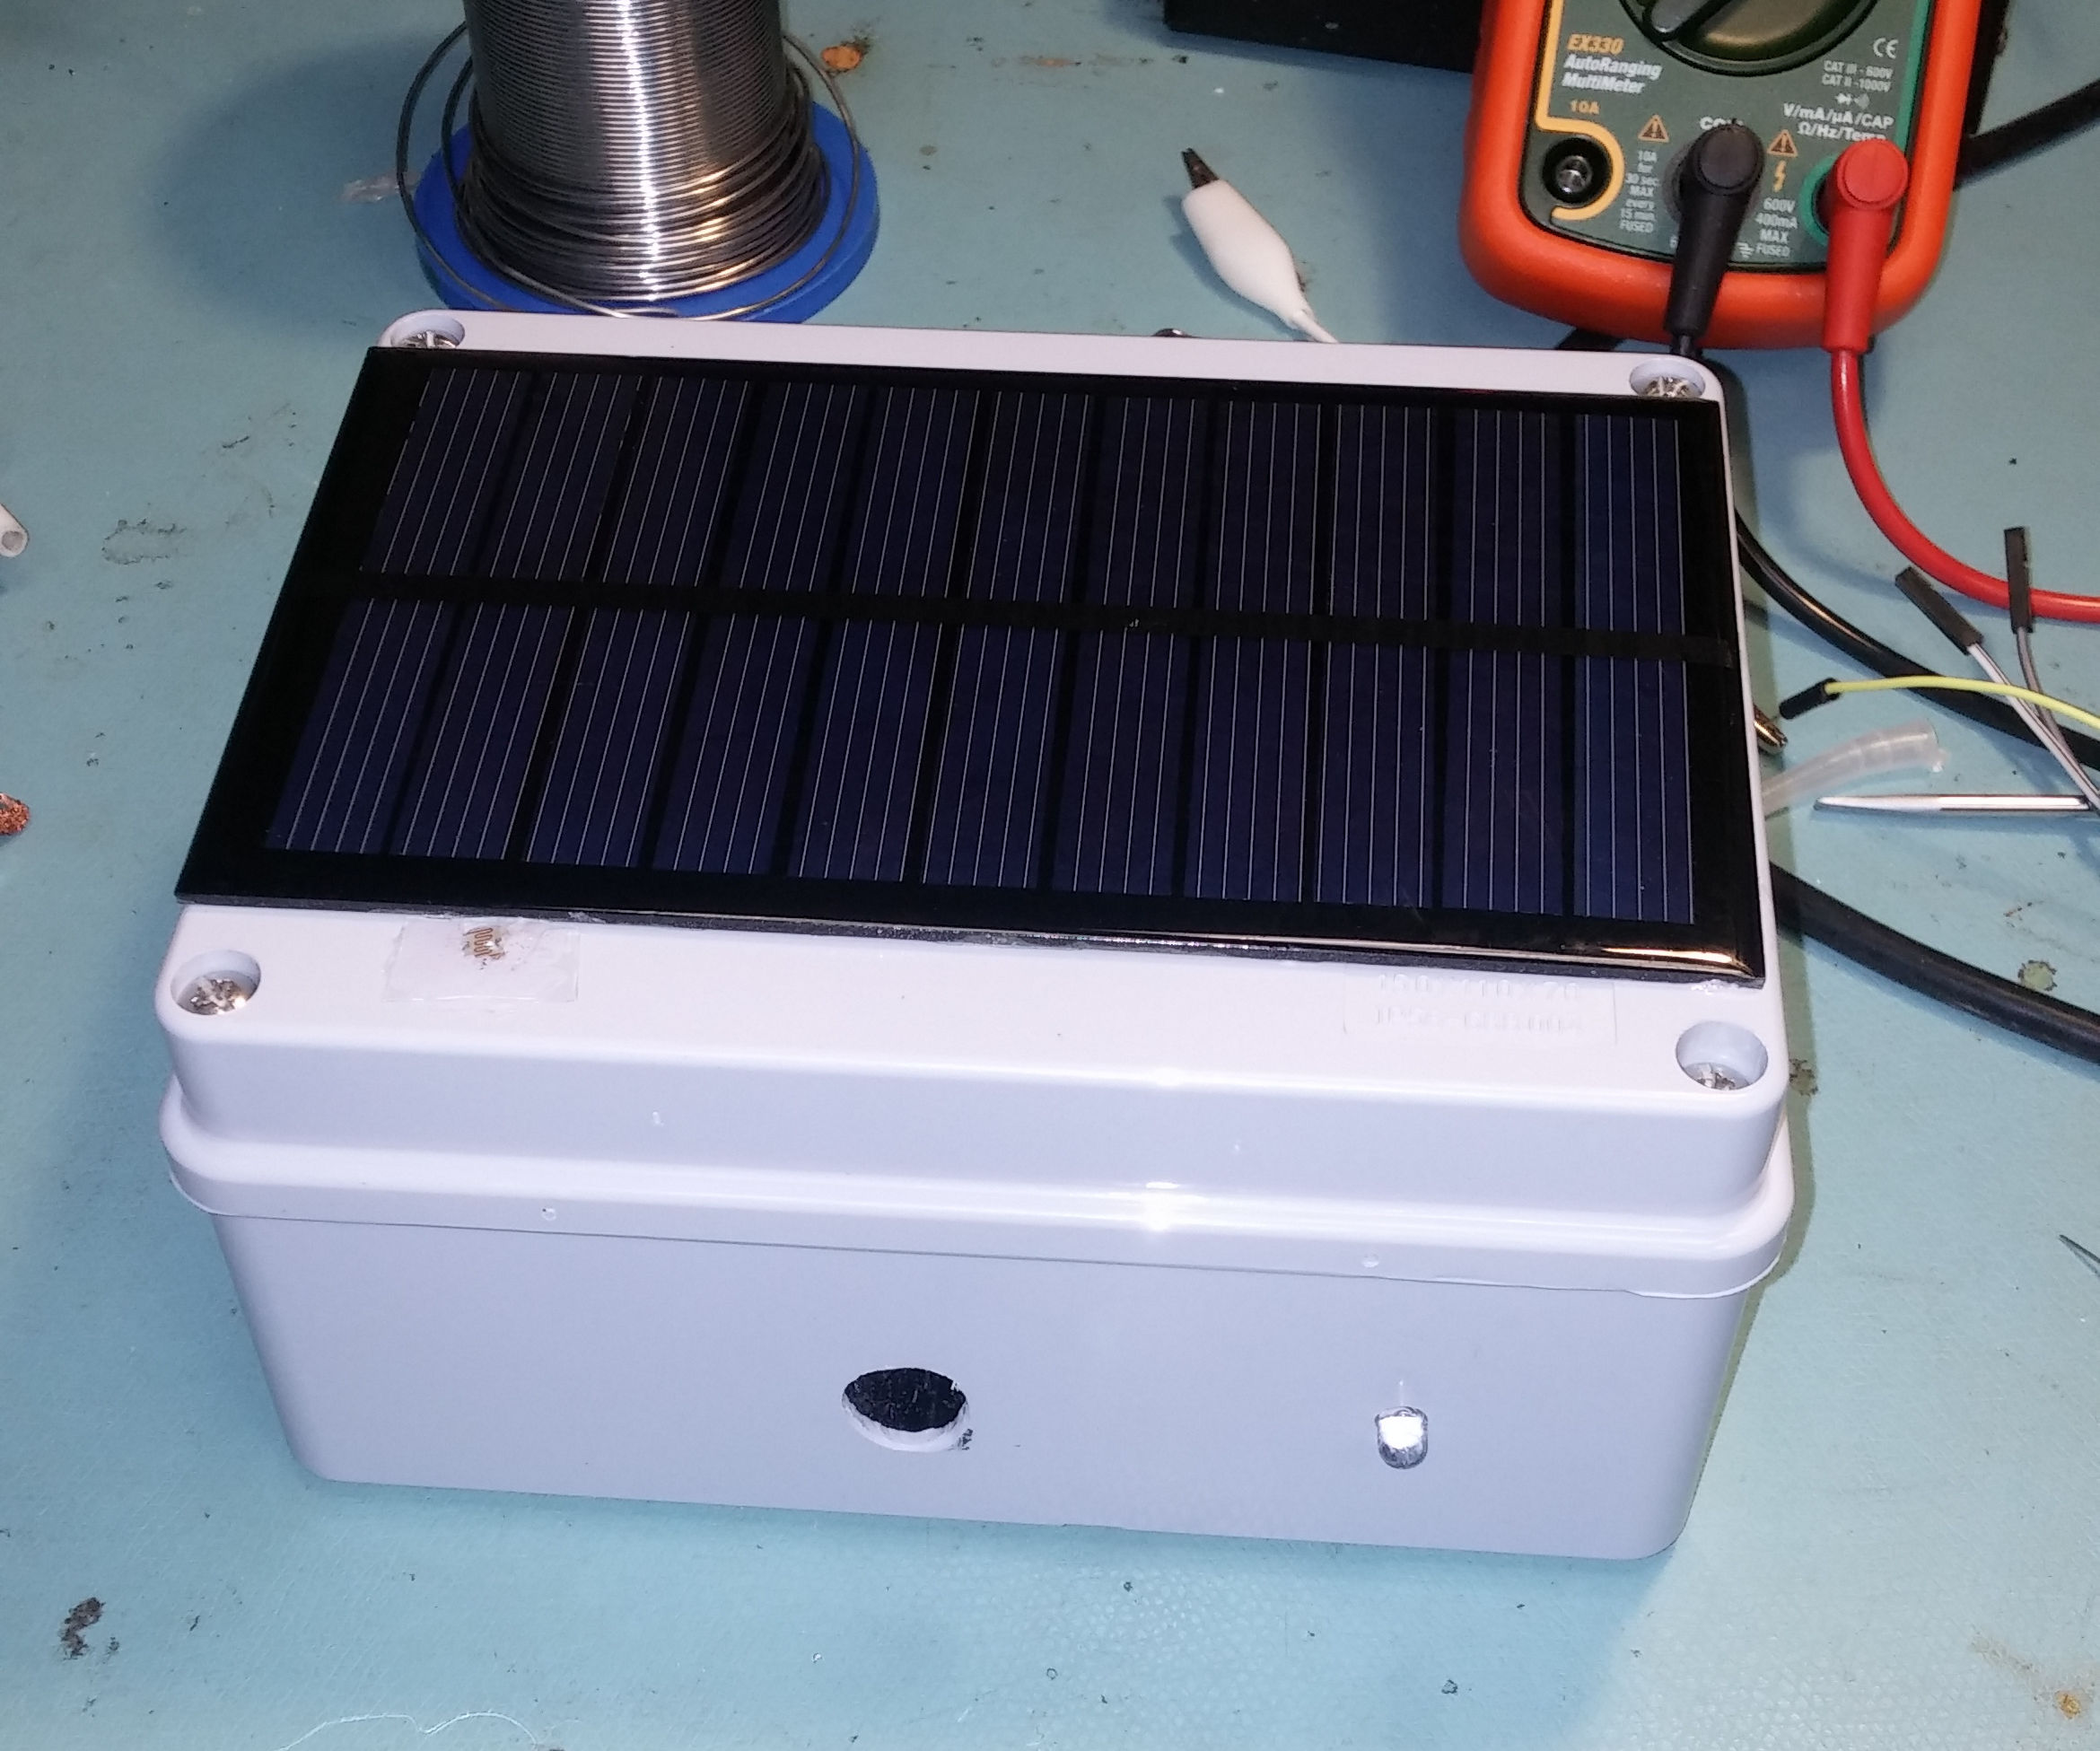 NaTaLia Weather Station: Arduino Solar Powered Weather Station Done the Right Way